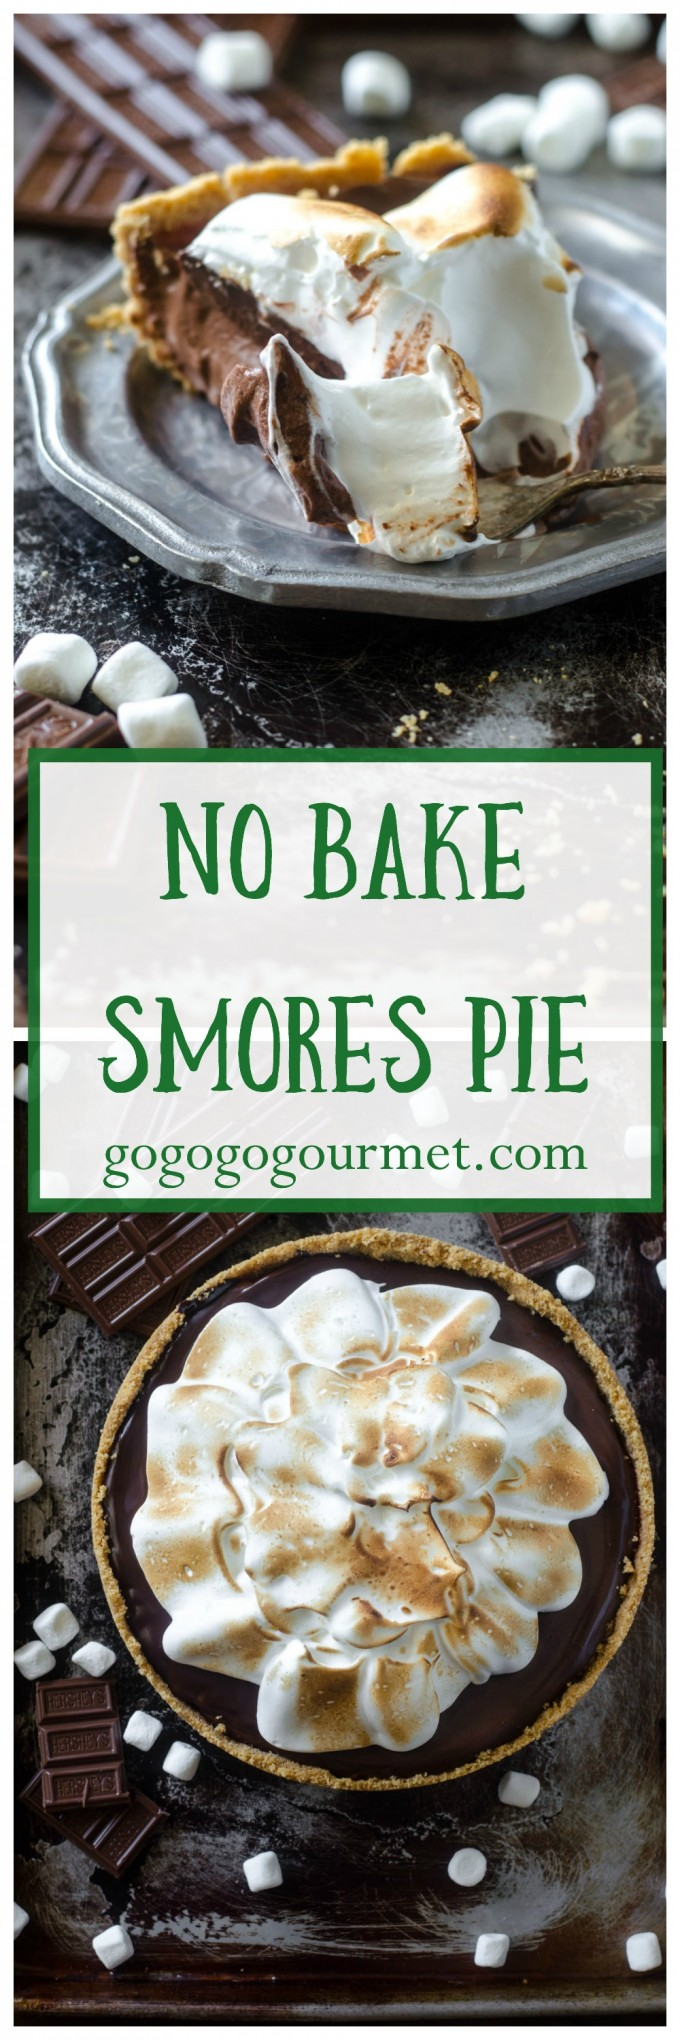 This No Bake Smores Pie is so incredible, you'll never believe that its semi-homemade! | Go Go Go Gourmet @Go Go Go Gourmet via @gogogogourmet